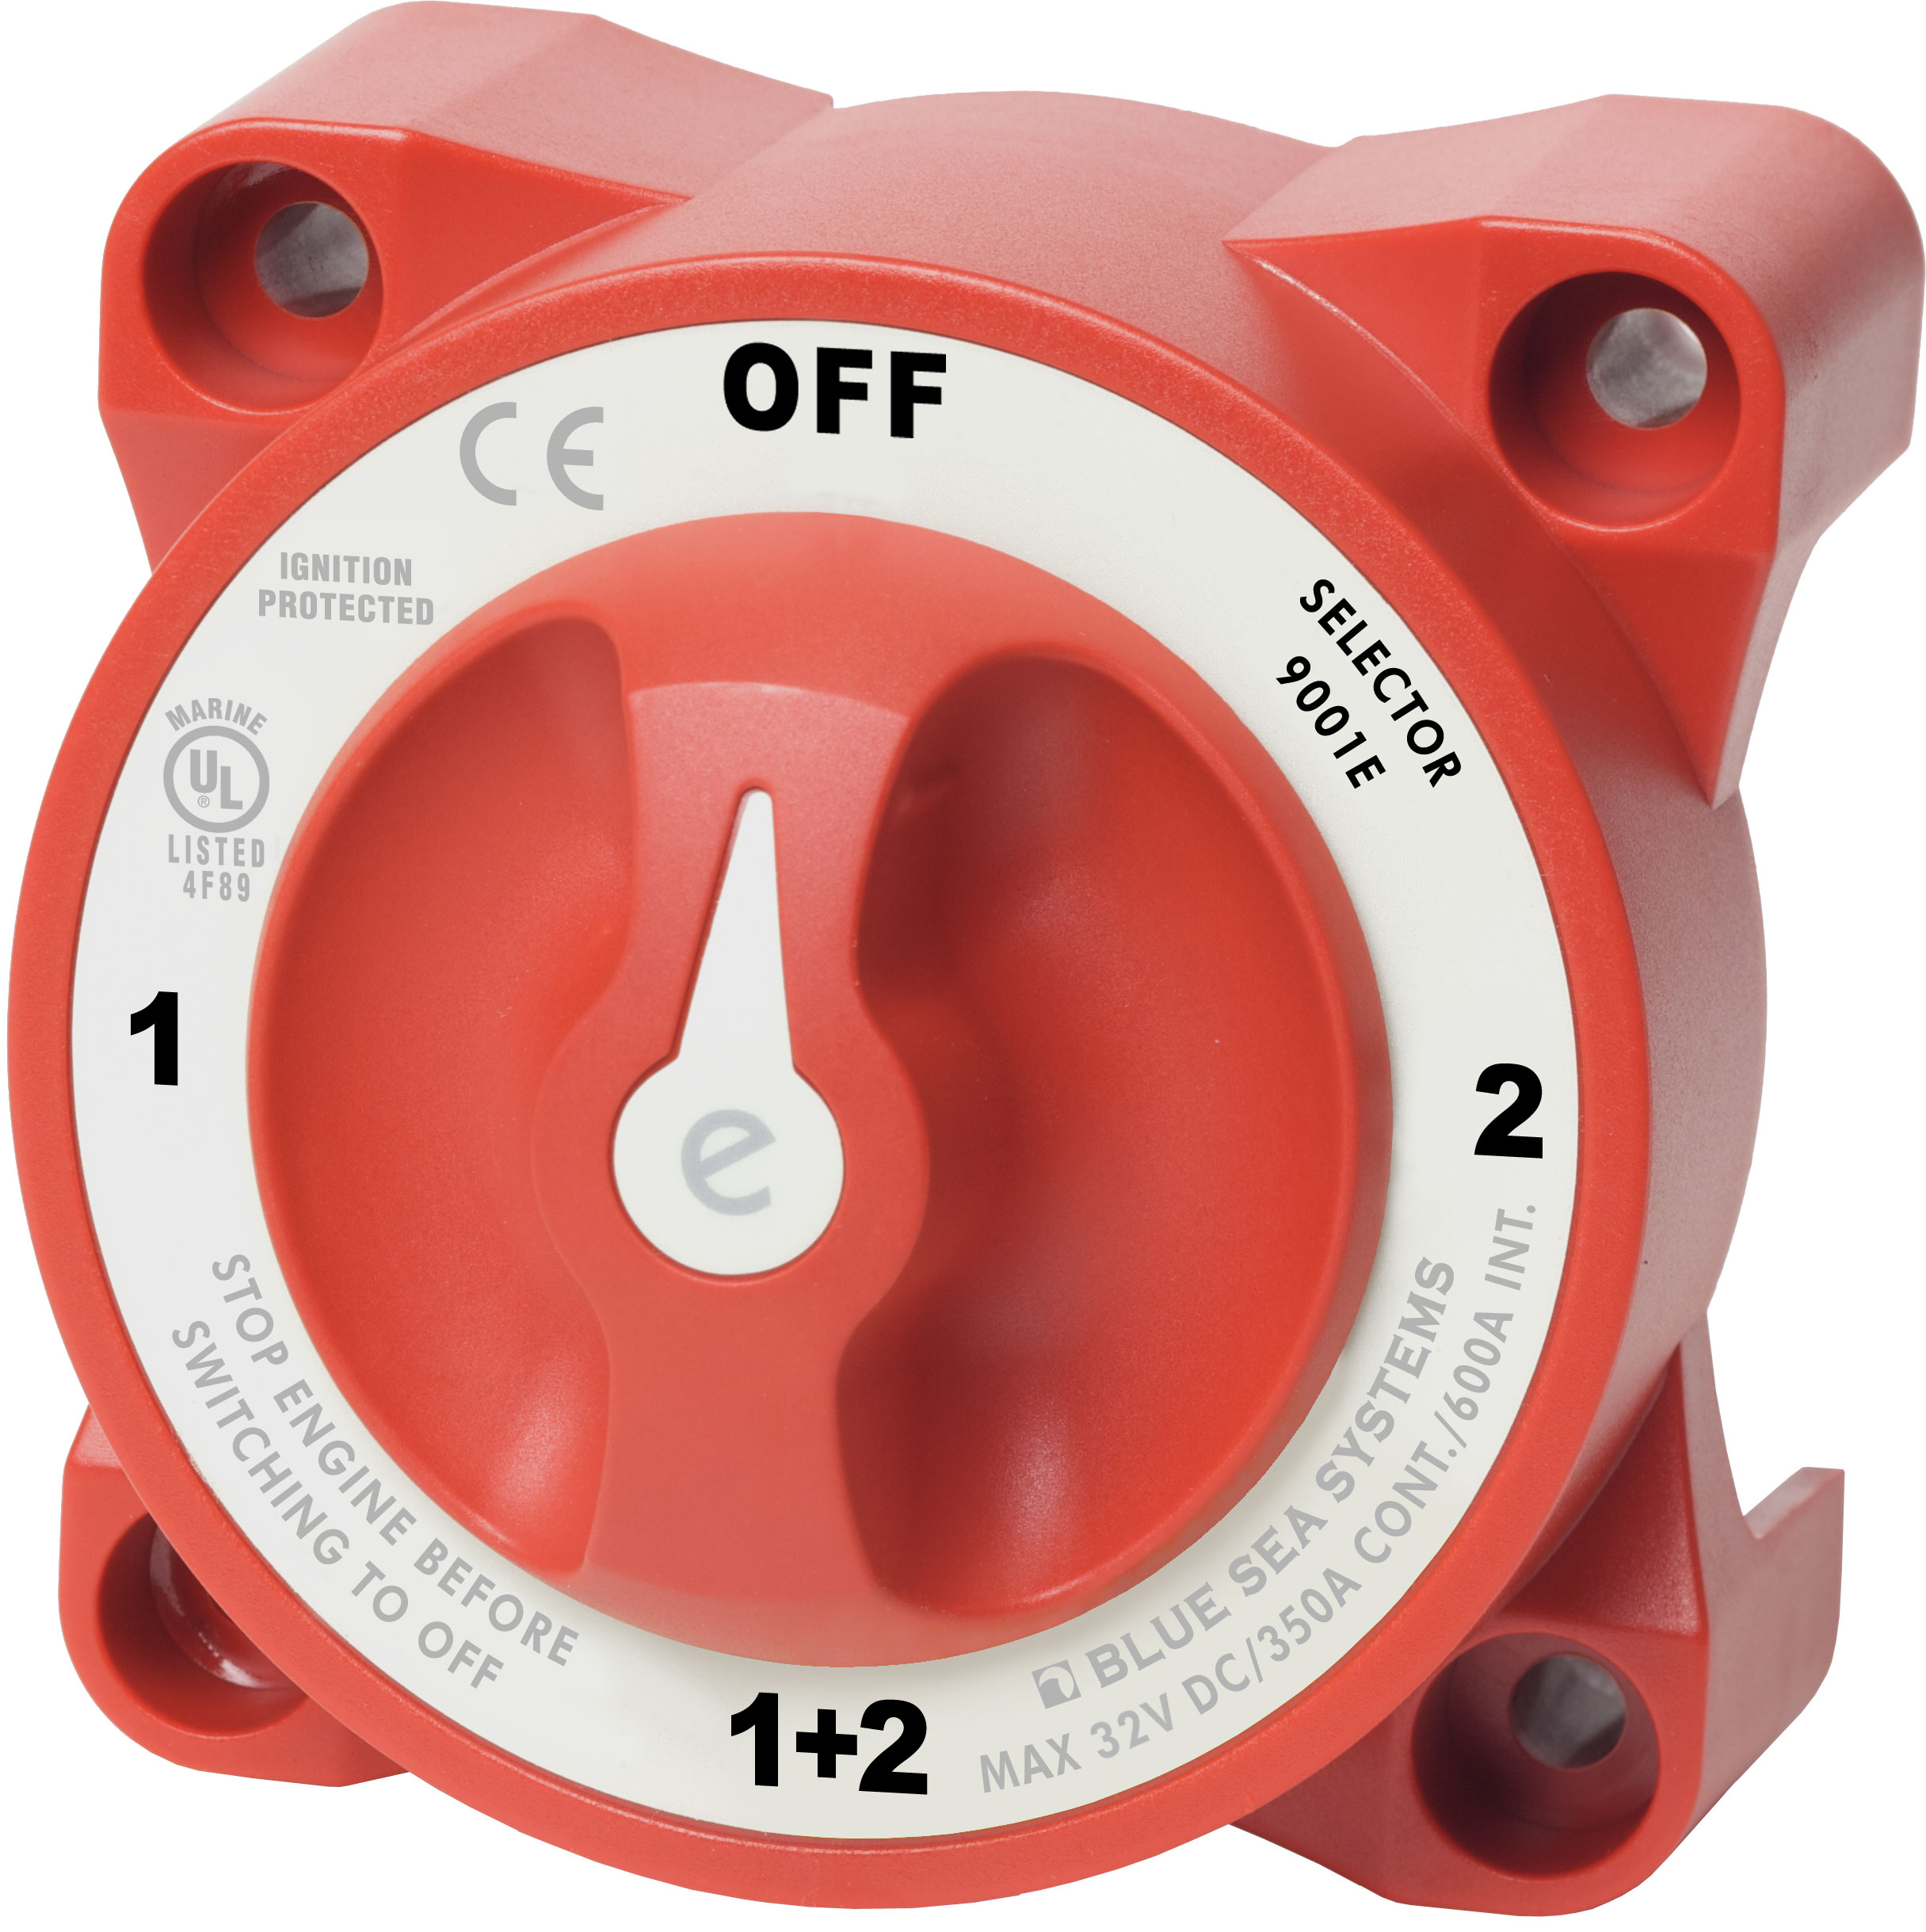 e series selector battery switch blue sea systems product image